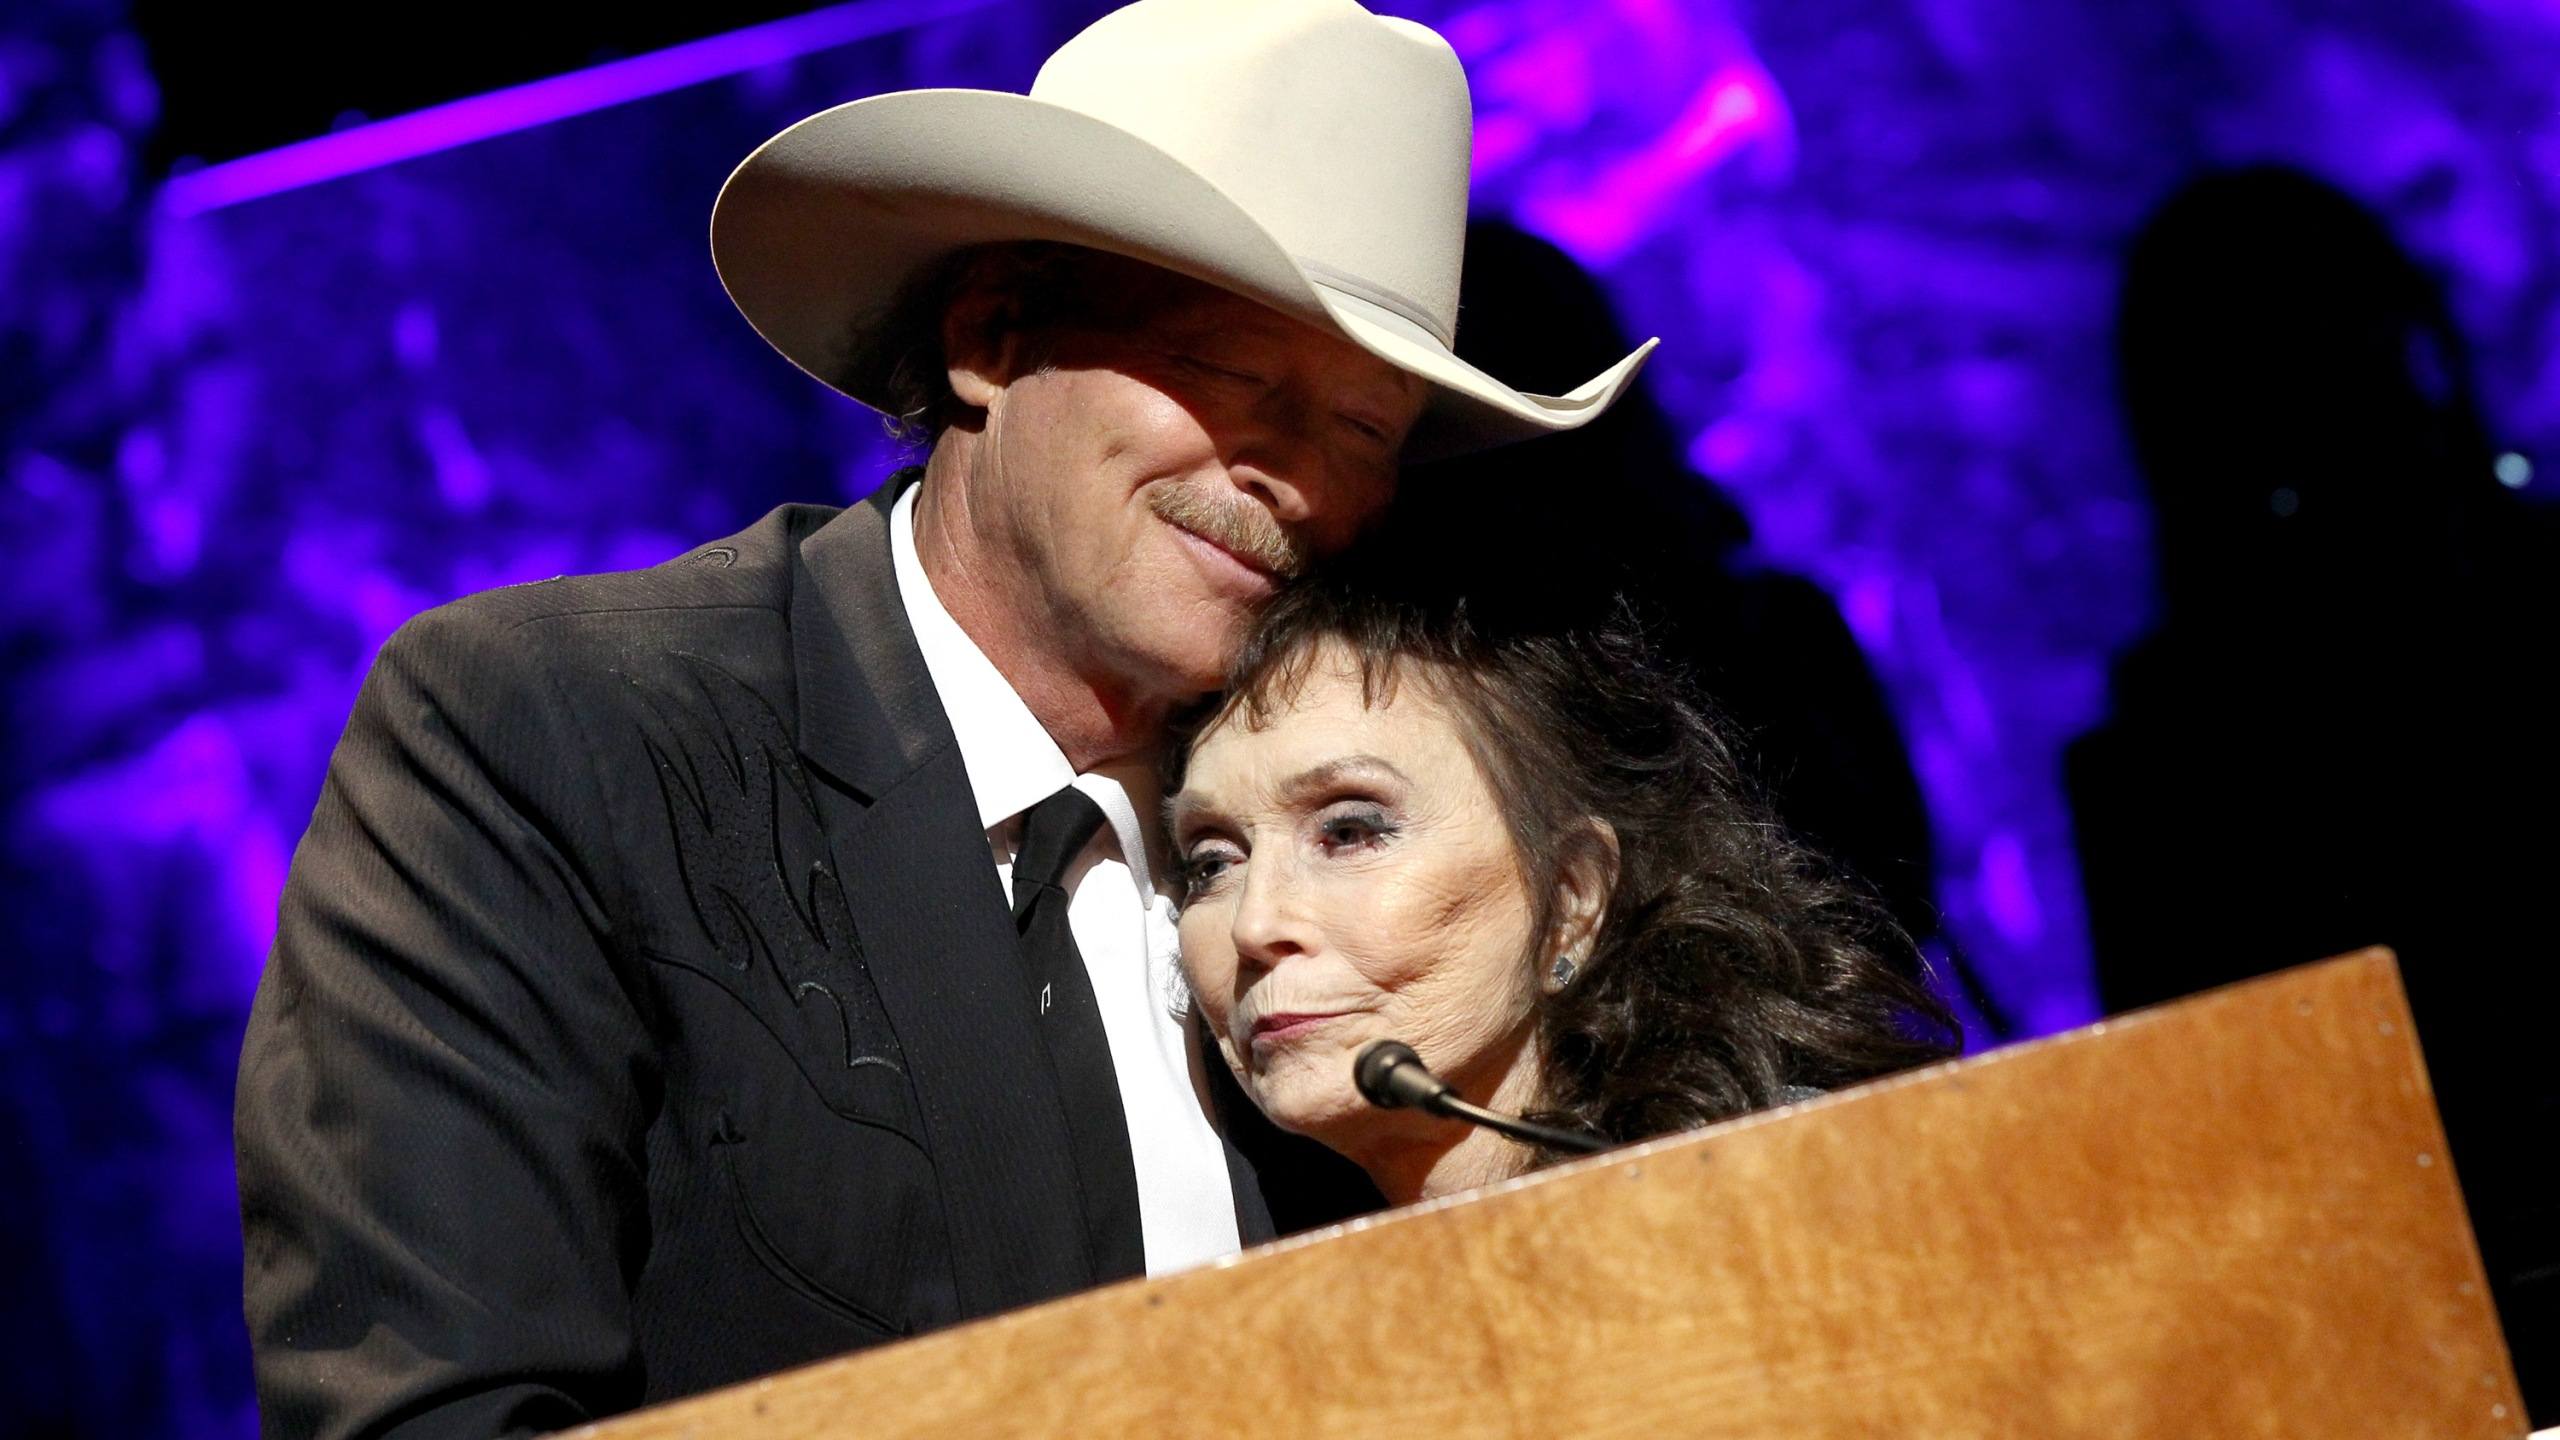 Country Music Hall Of Fame And Museum Hosts Medallion Ceremony To Celebrate 2017 Hall Of Fame Inductees Alan Jackson, Jerry Reed And Don Schlit_424474